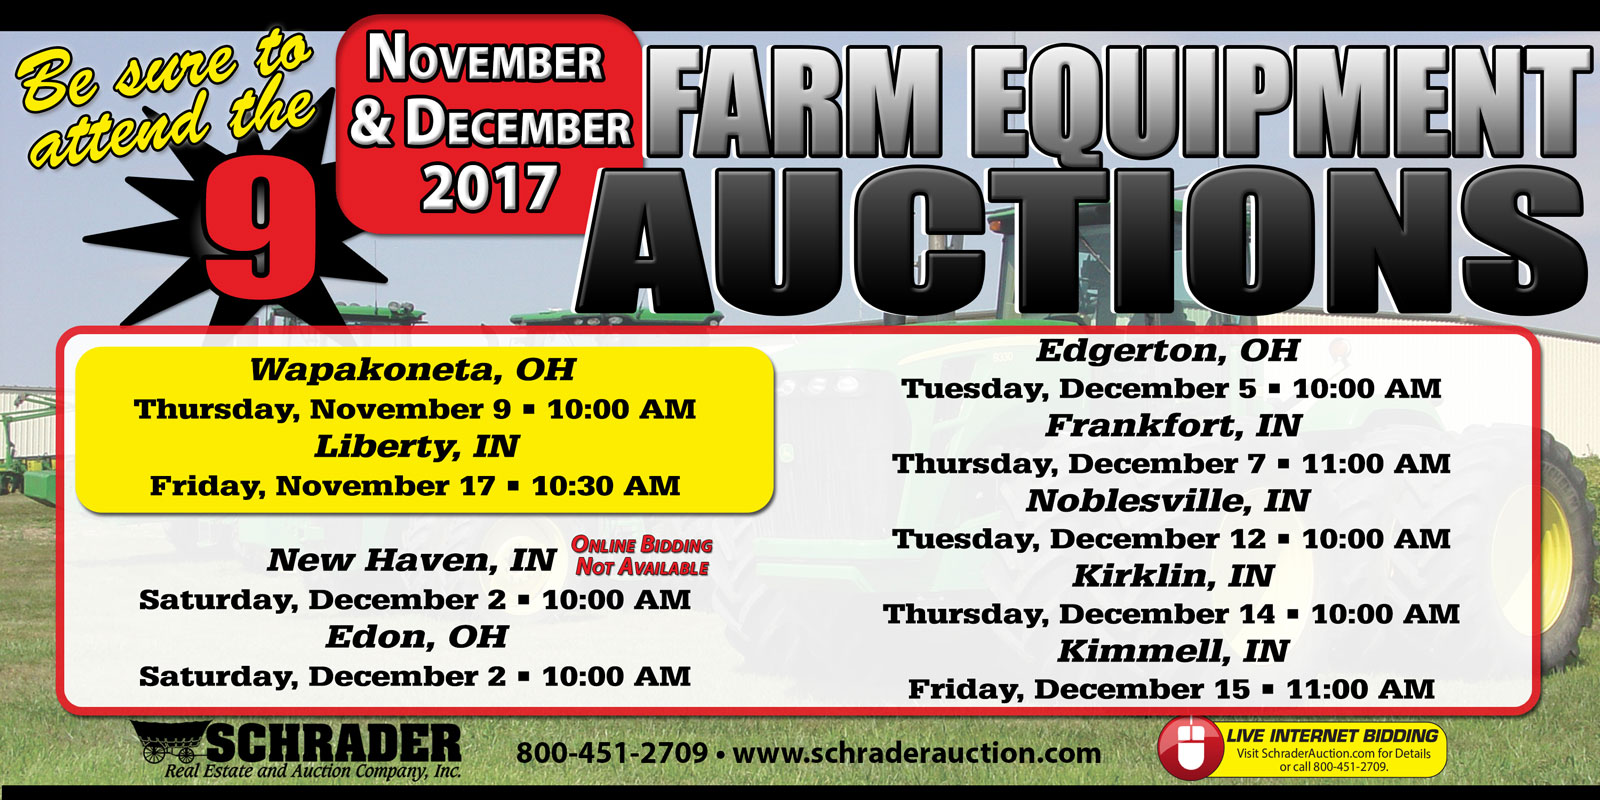 Upcoming Farm Equipment Sales